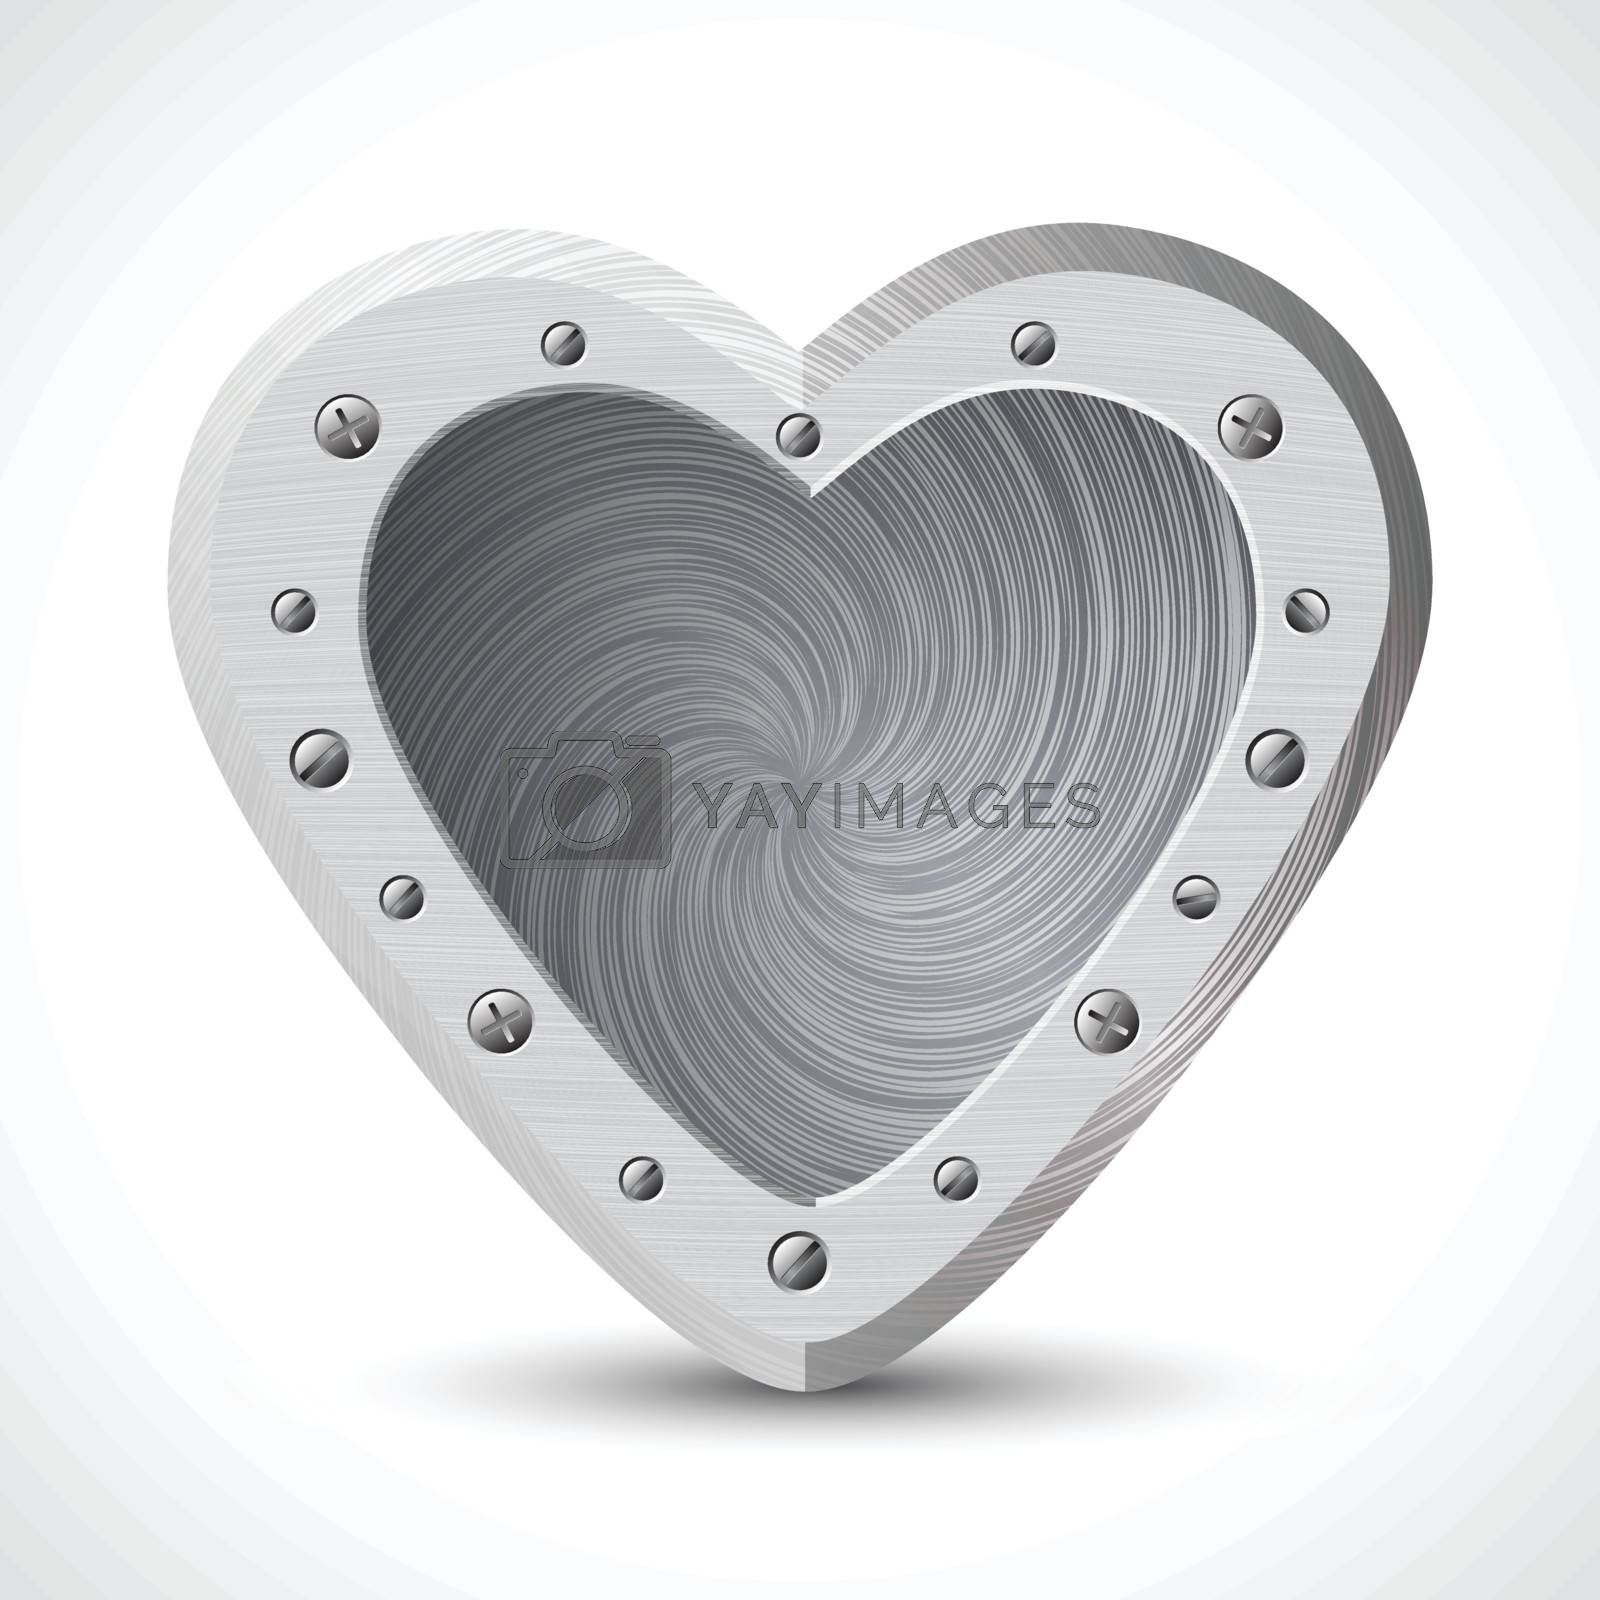 Iron heart on Isolated white background by nirots